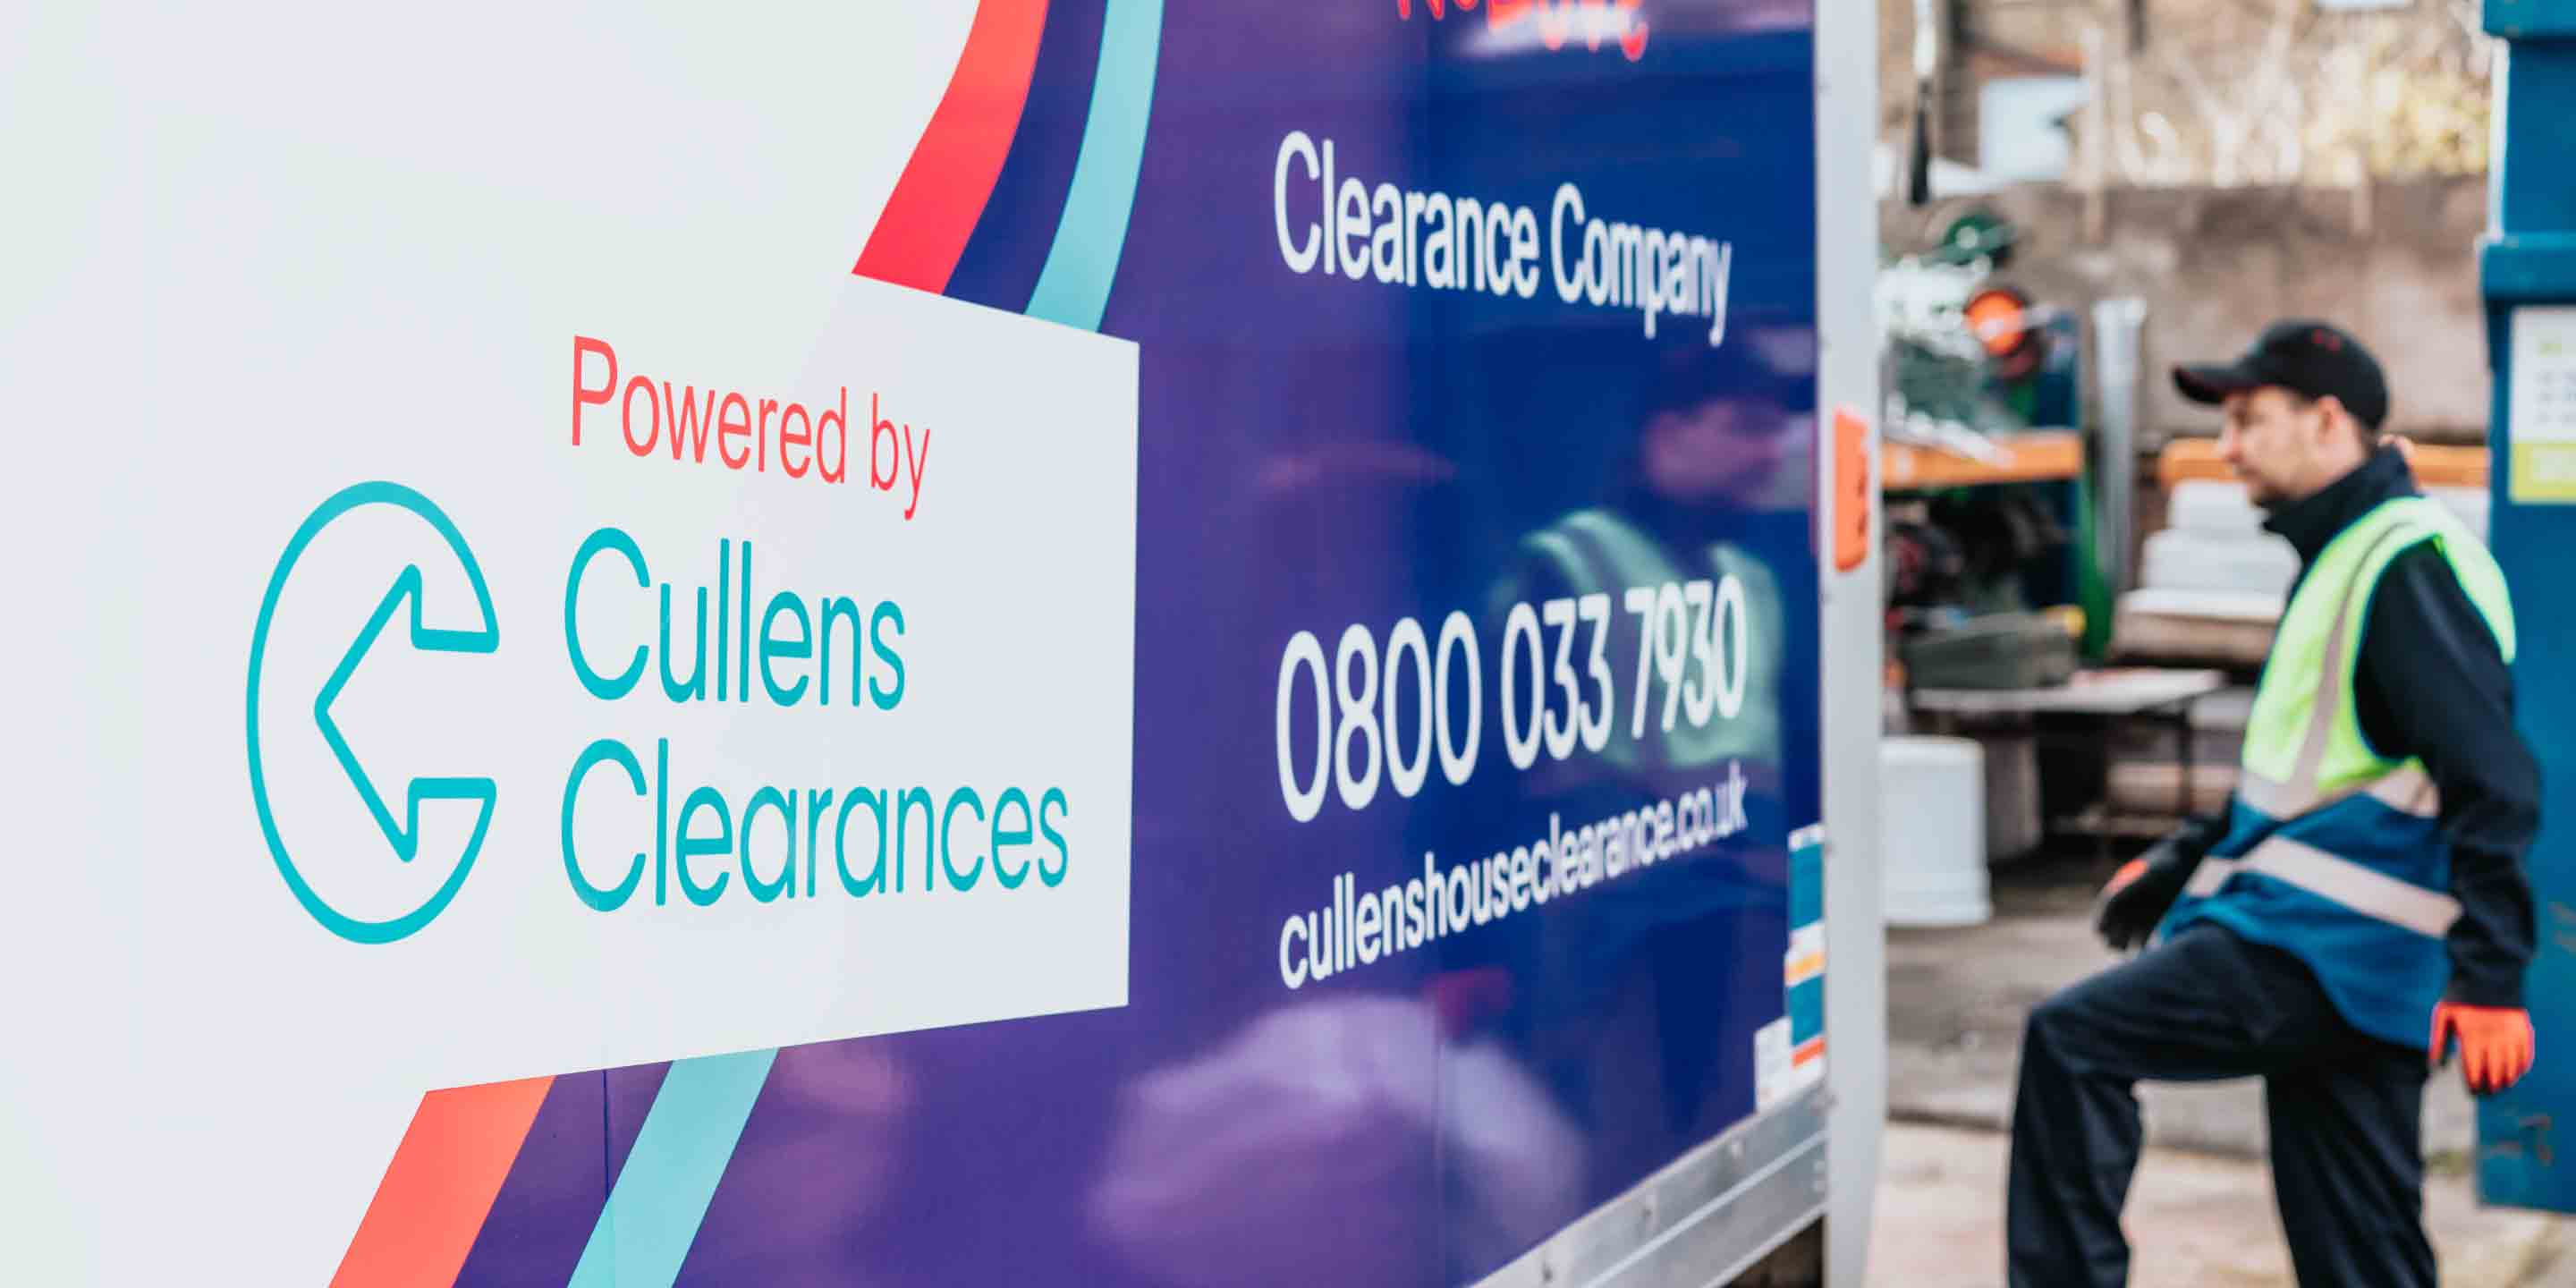 Fulham Office Clearance Company